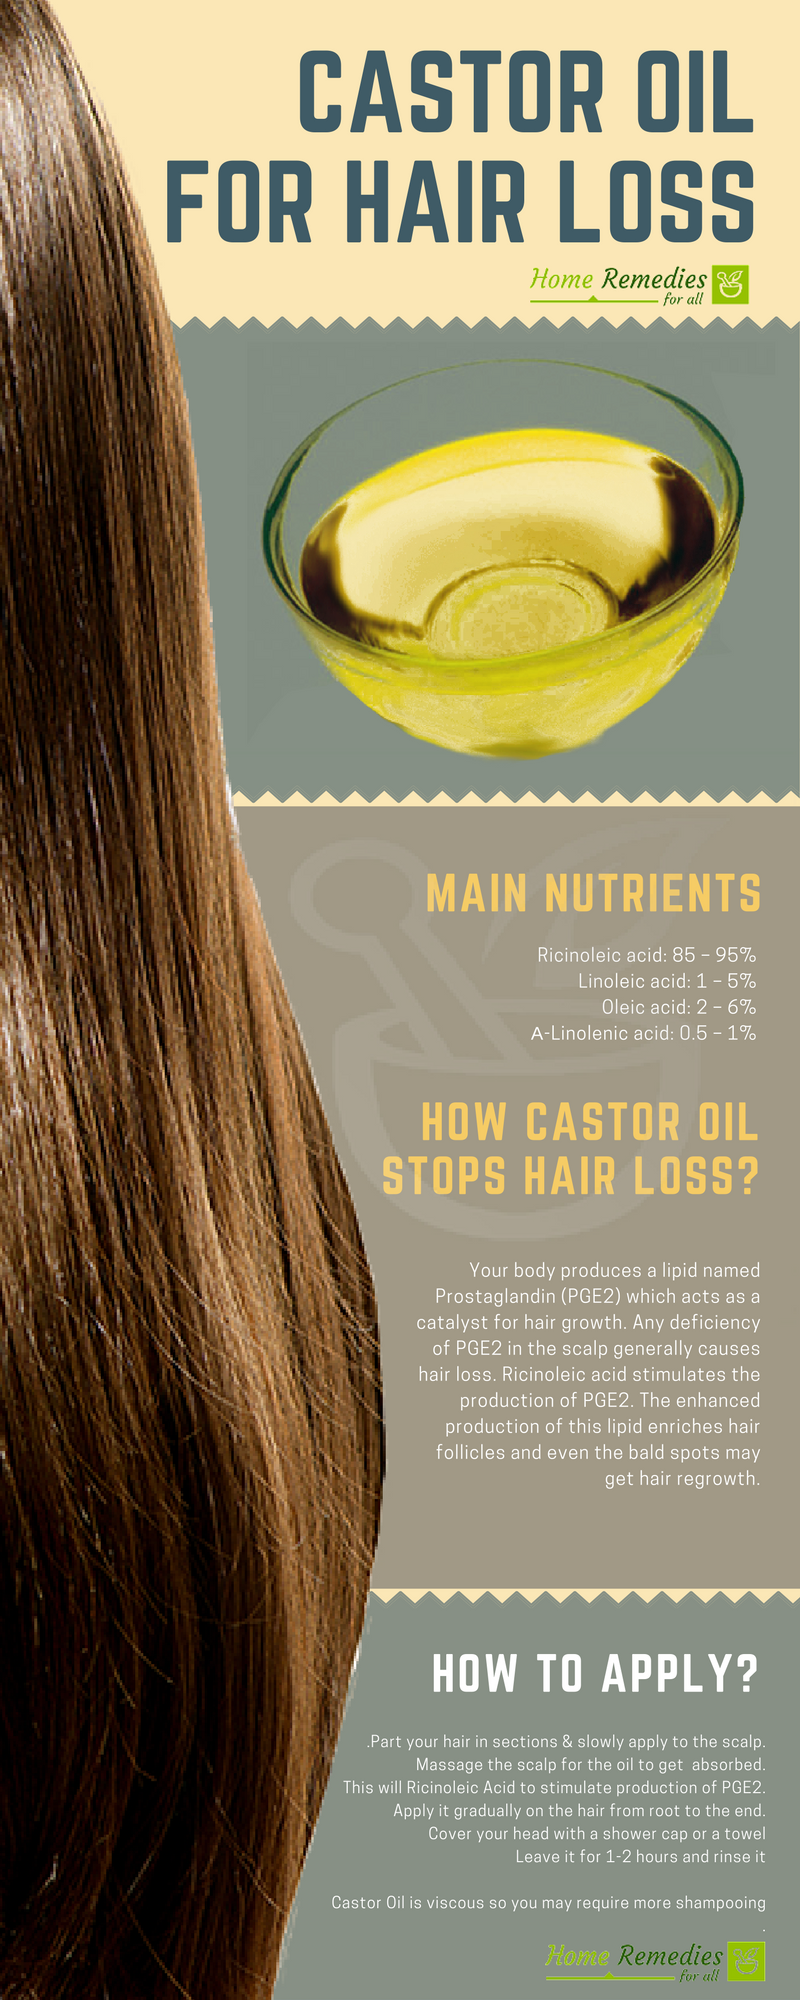 Castor Oil Is One Of The Best Home Remedies For Hair Loss Its